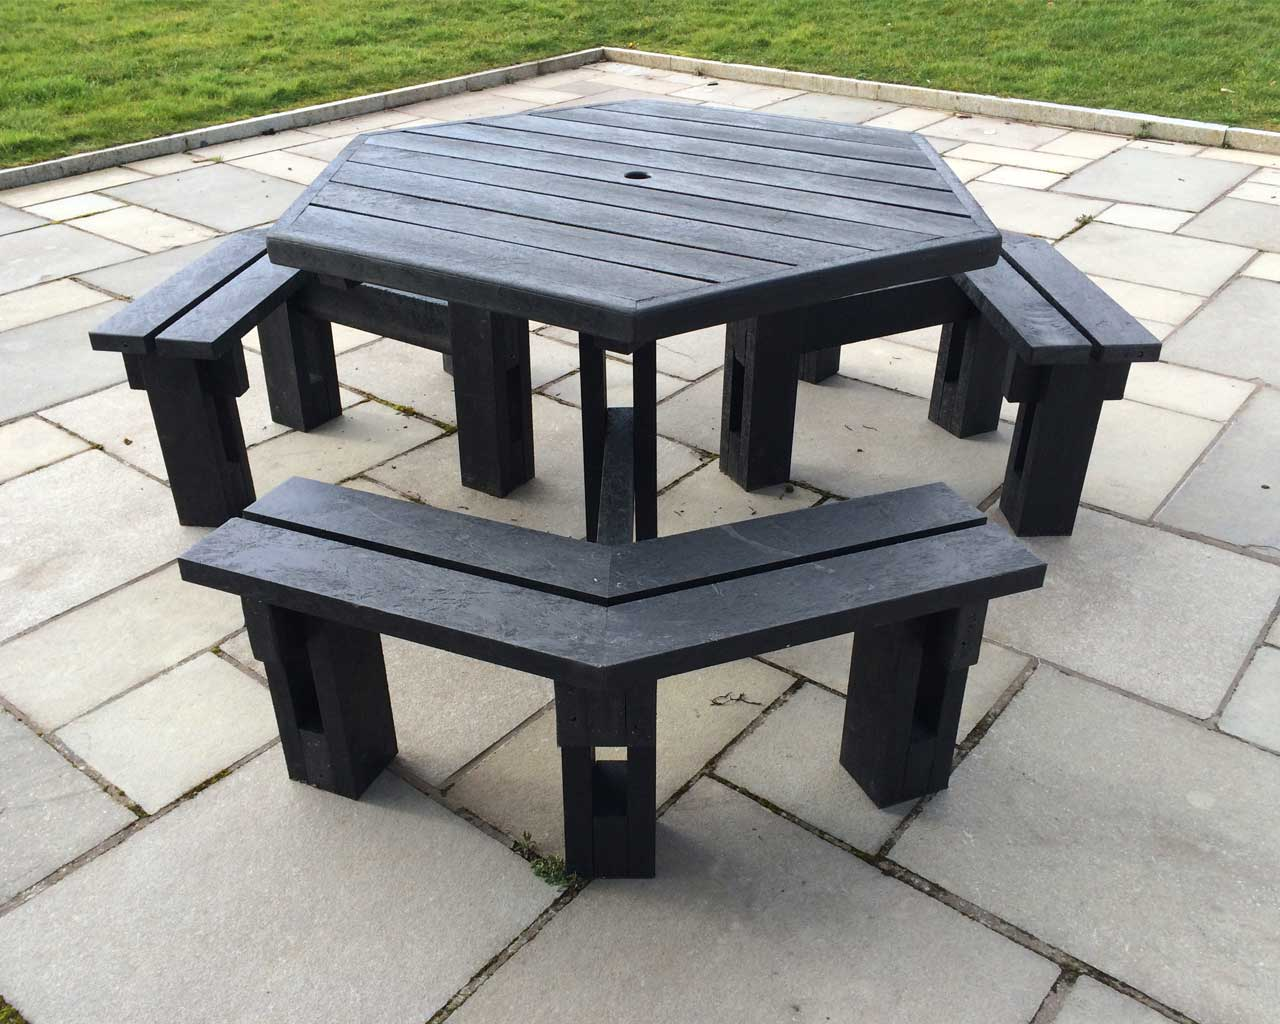 6 sided picnic table without back